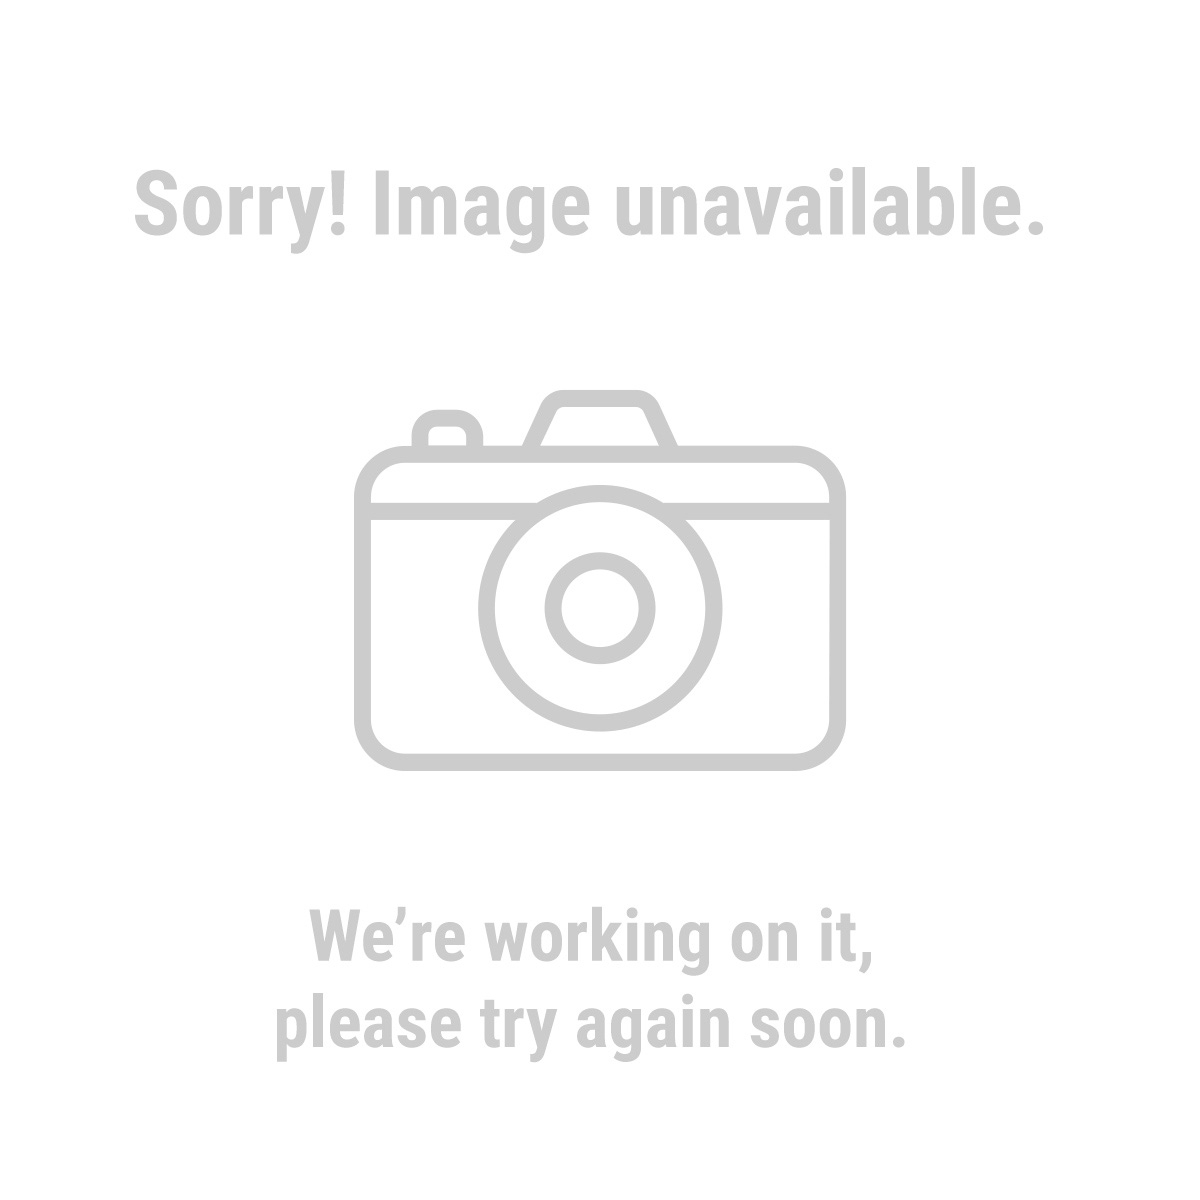 "Warrior 68879 14"" Segmented Diamond Blade for Cured Concrete"